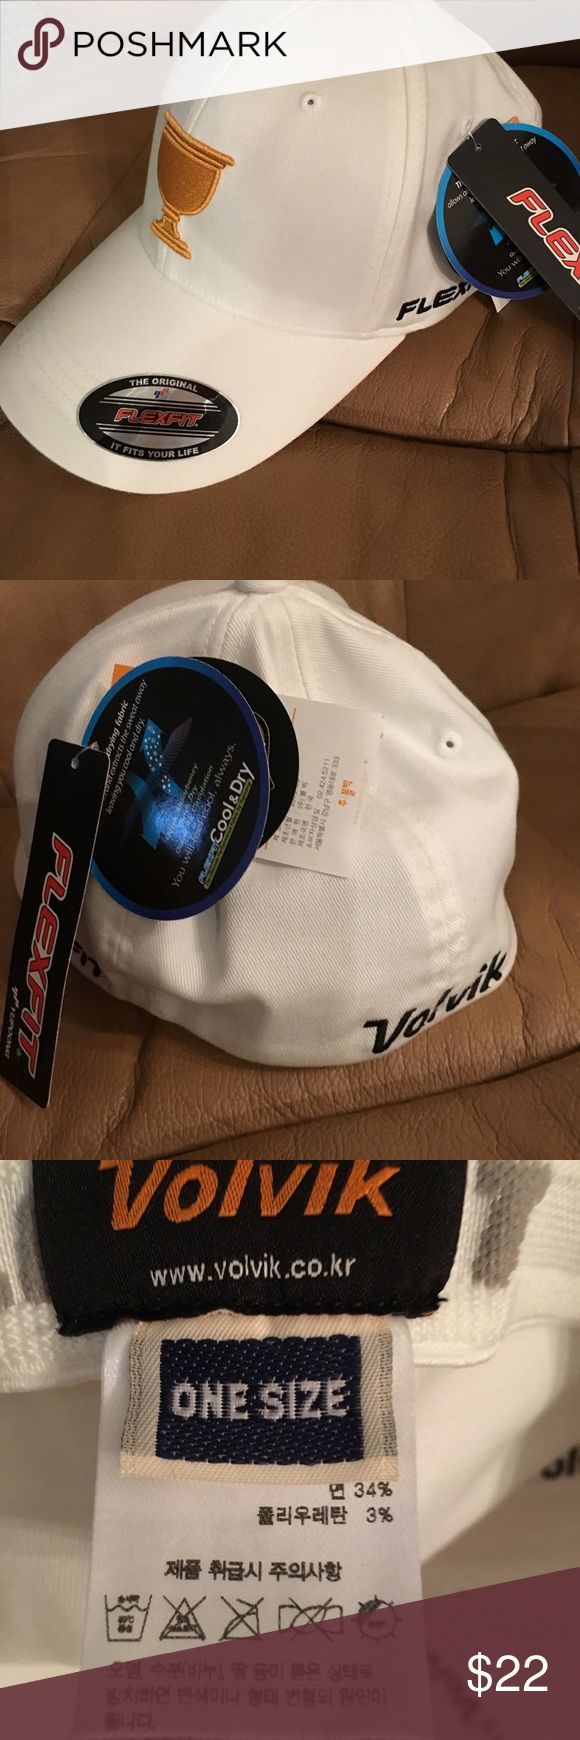 Presidents Cup Flexfit Cool & Dry -Volvik Golf Cap This is a brand-new Presidents Cup Flexfit Cool & Dry -Volvik Golf Cap.  It is extremely well-made and detailed.  It is one size with flex fit. Volvik Accessories Hats